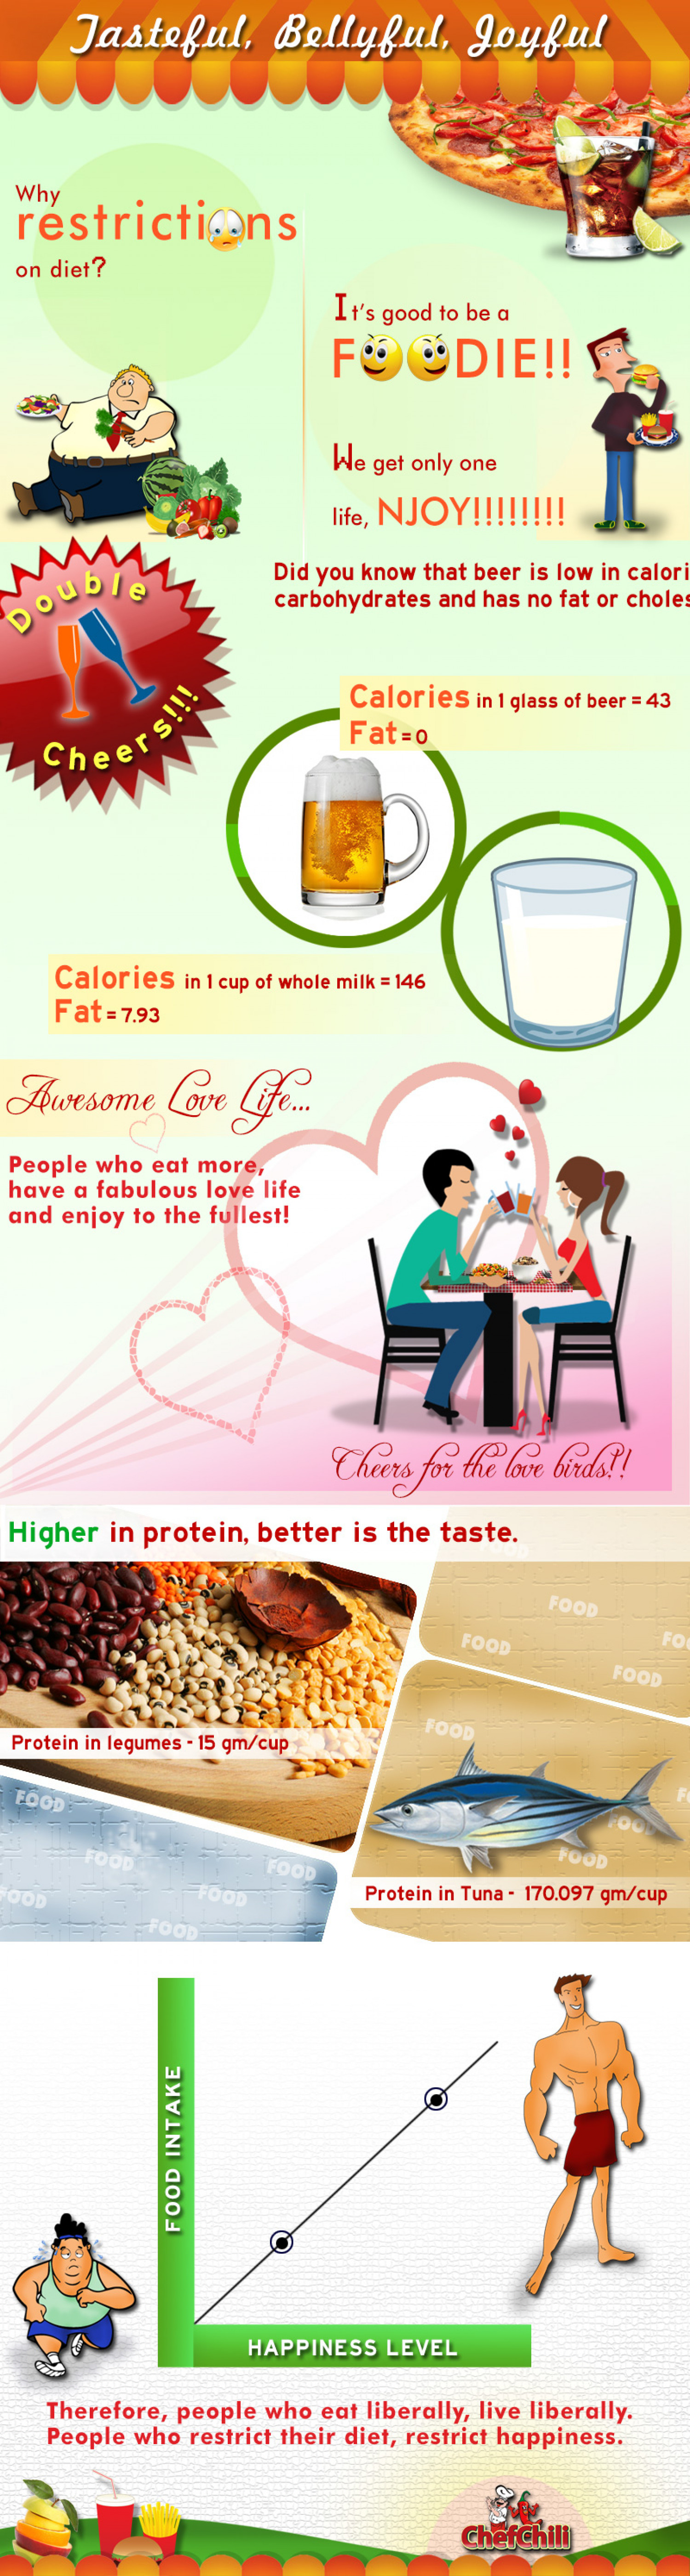 Tasteful, Bellyful, Joyful Infographic